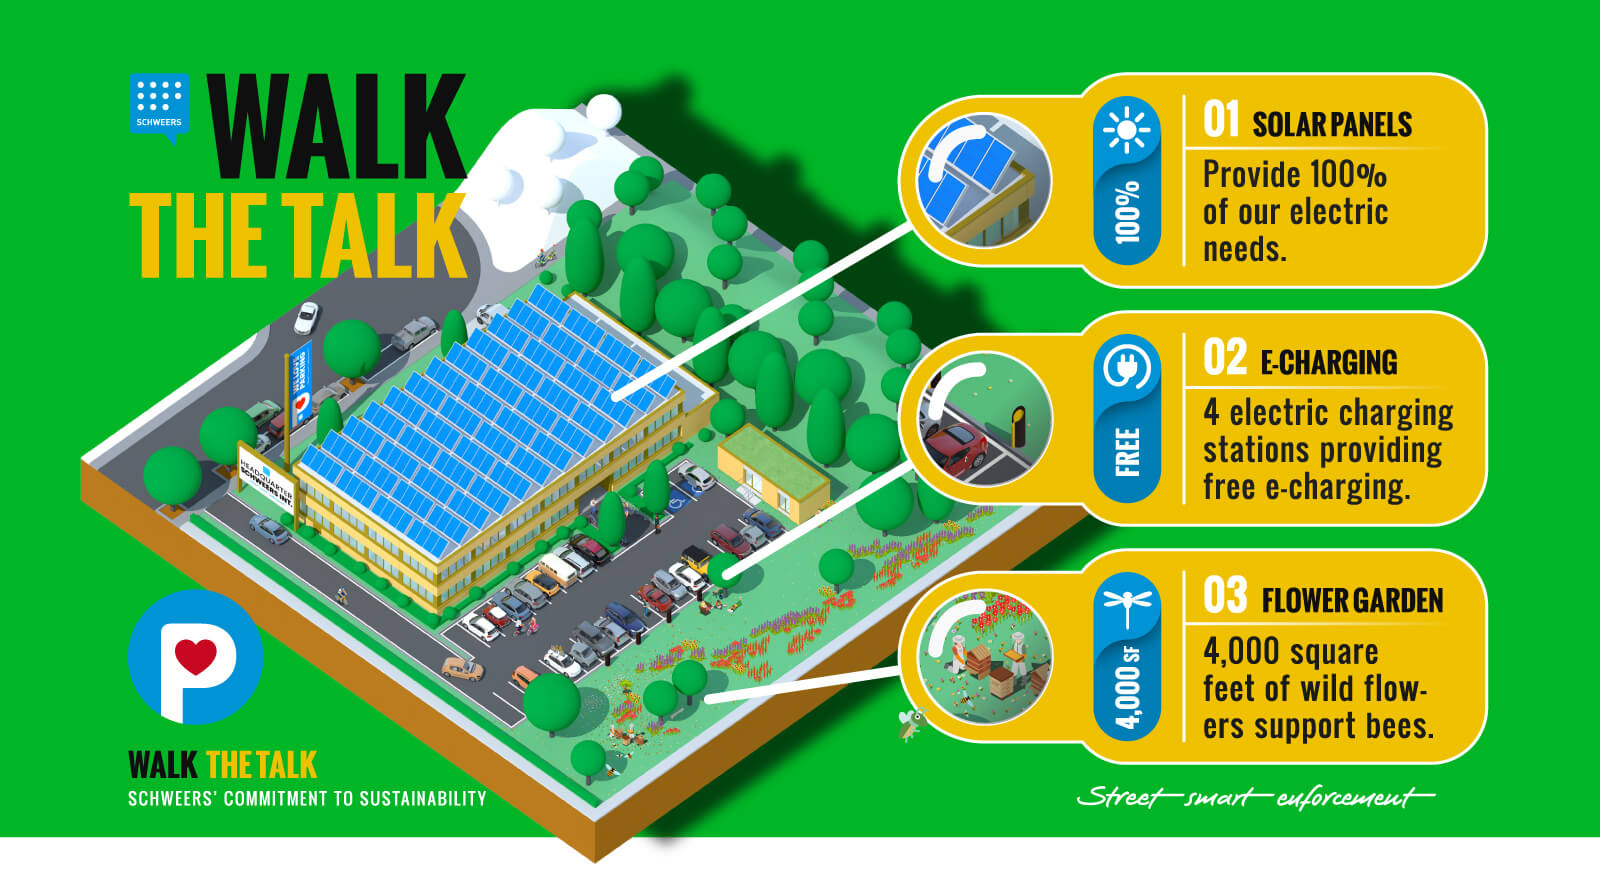 Walk the Talk - Schweers' commitment to sustainability